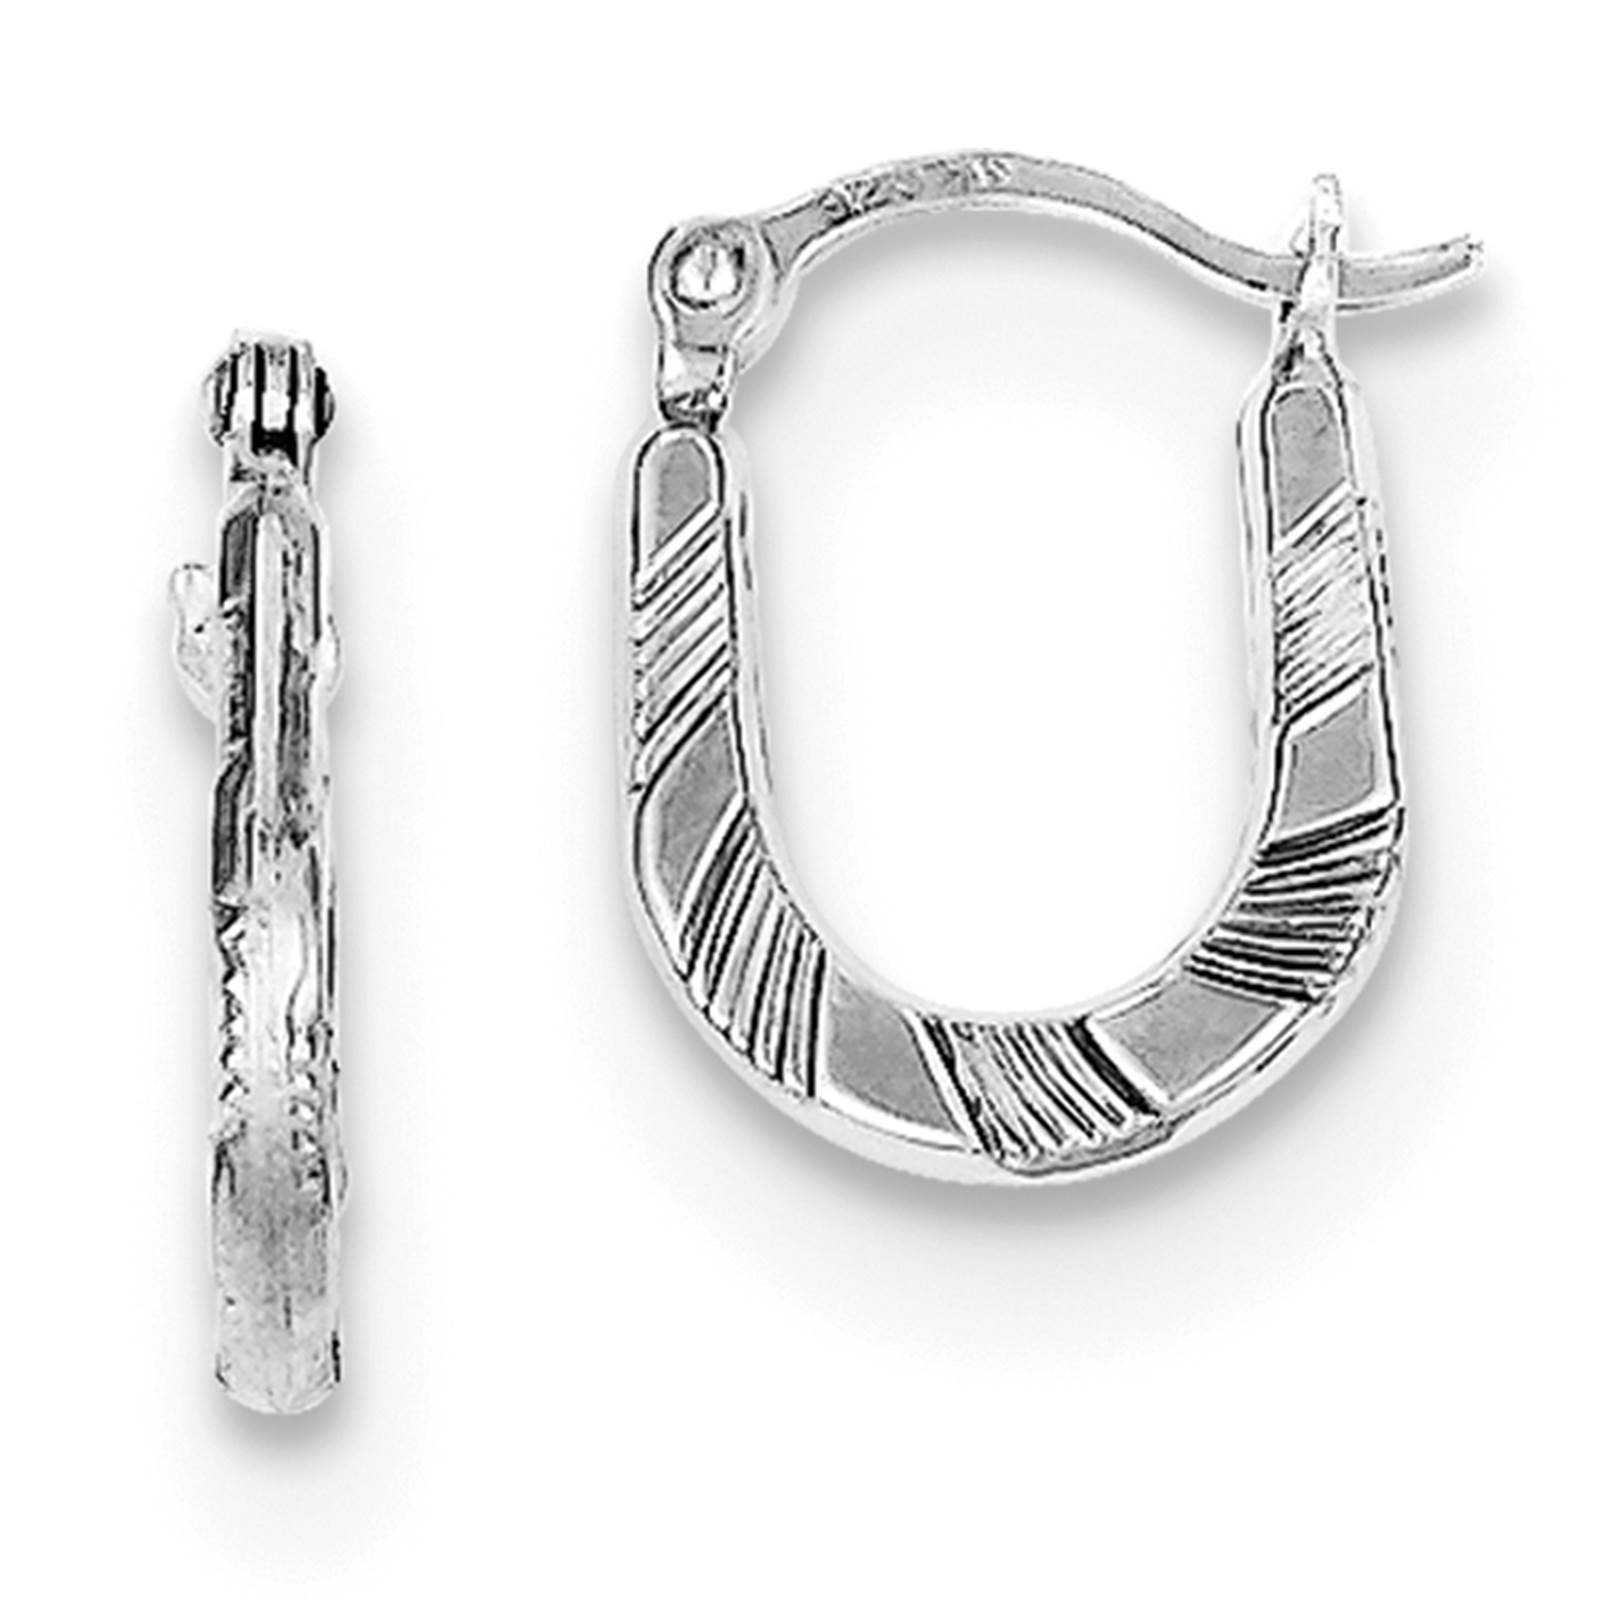 925 Sterling Silver Diamond Cut Scalloped Hinged Post Hoop Earrings 1.8mm x 13mm